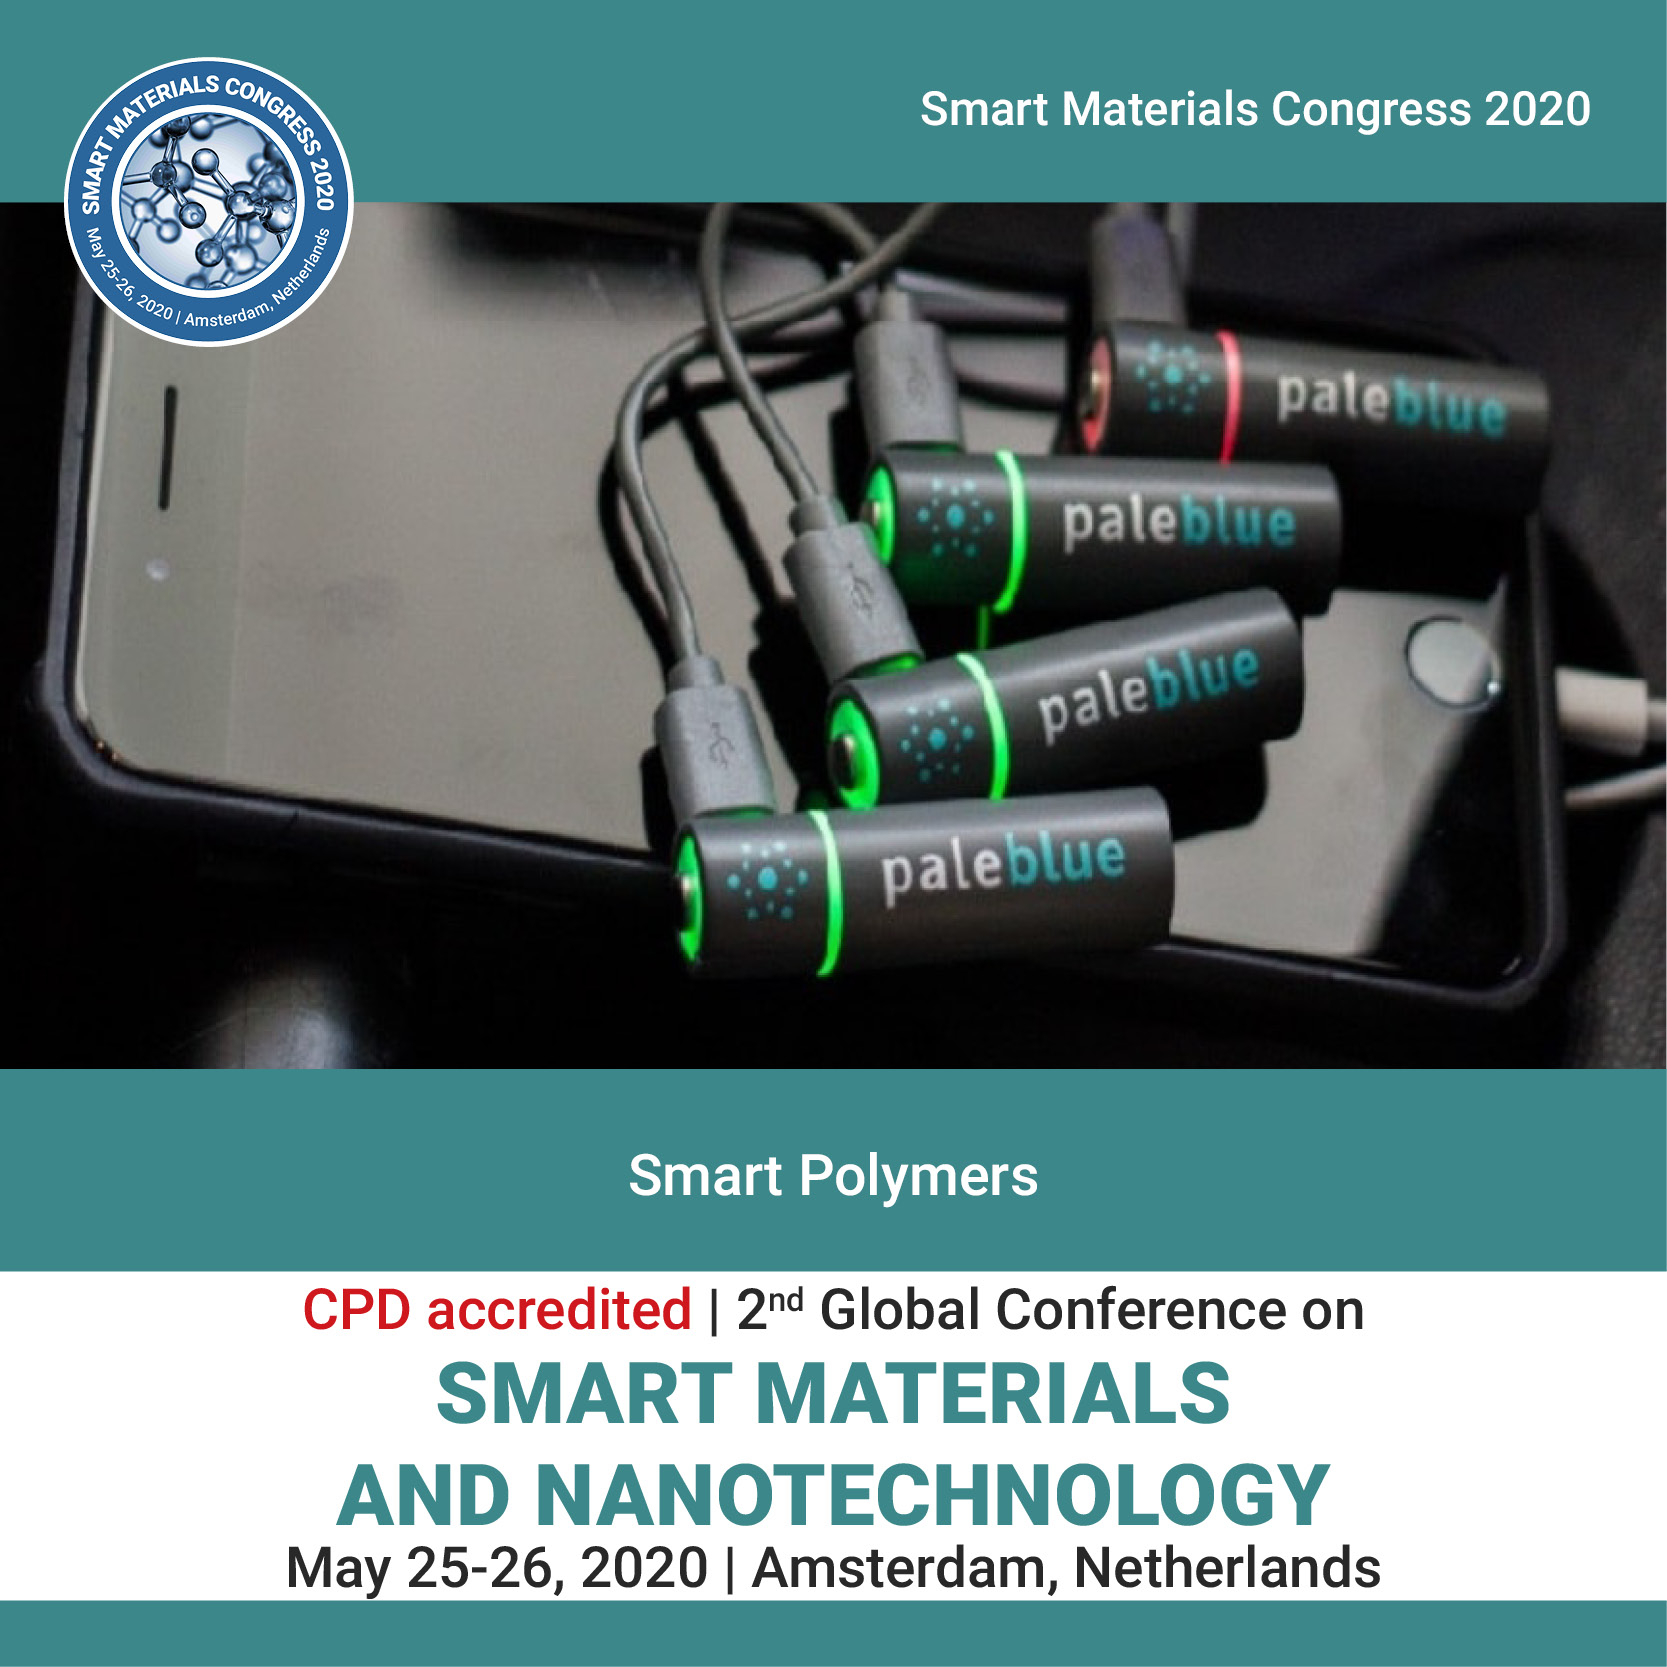 Smart Polymers Photo